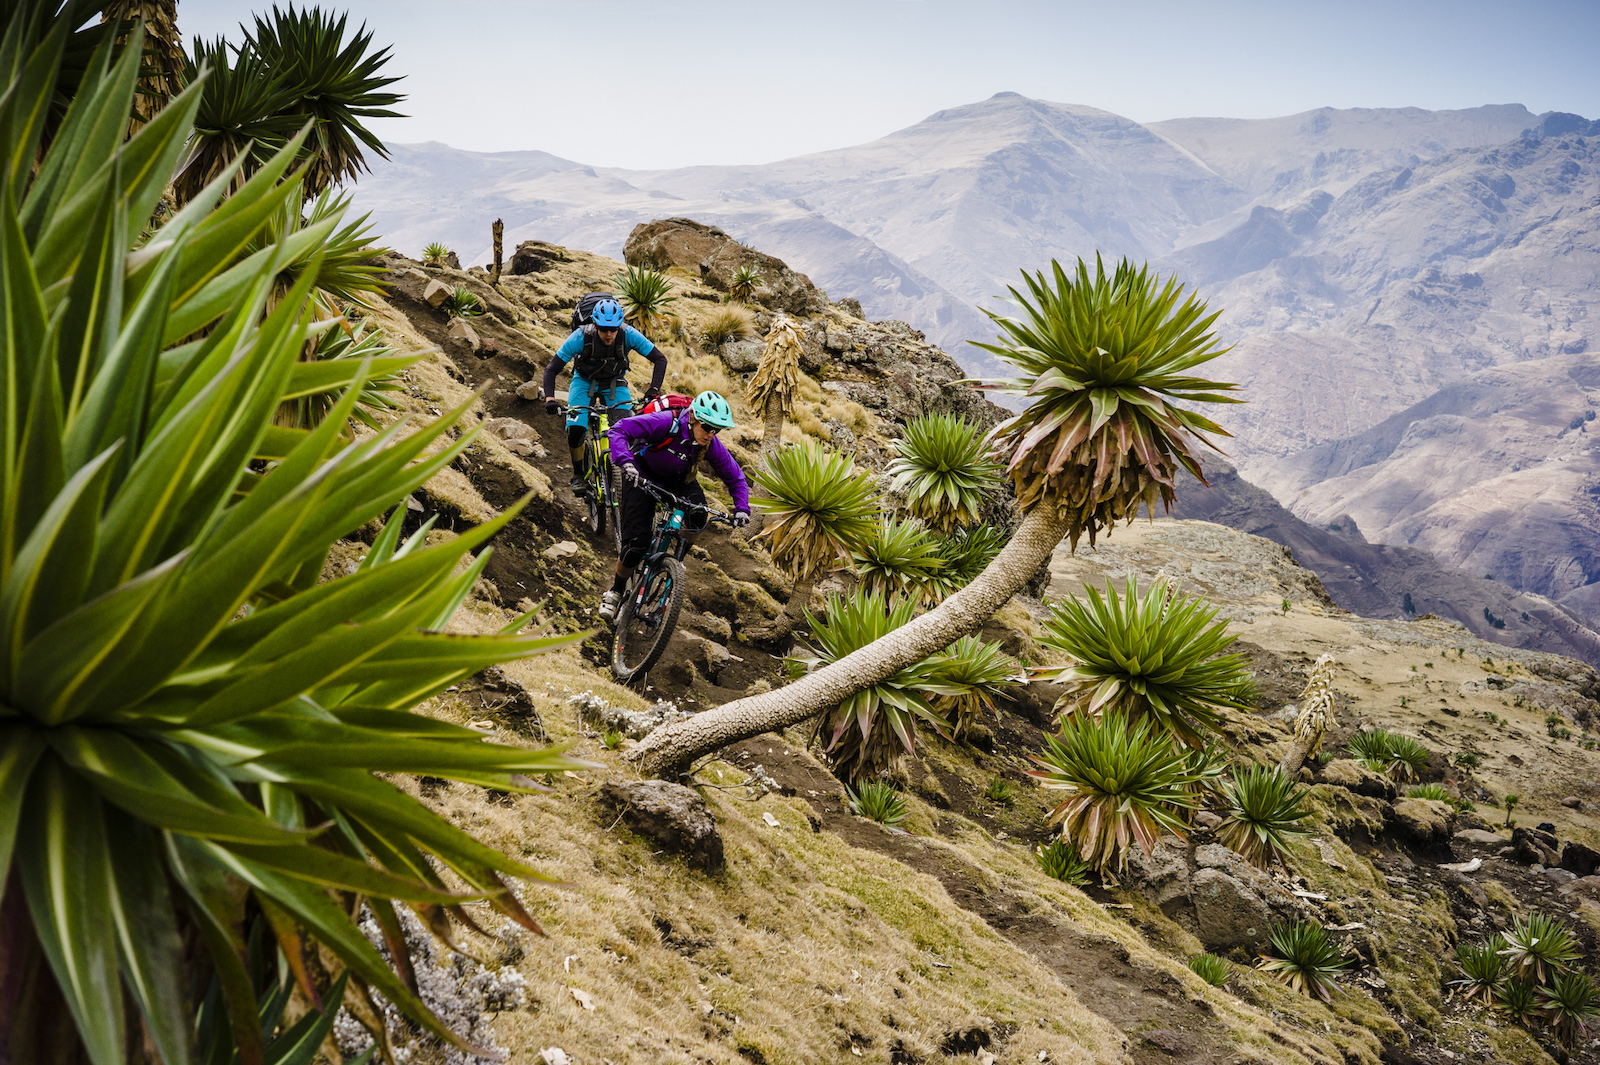 Images by Dan Milner from Giro s trip to Ethiopia.